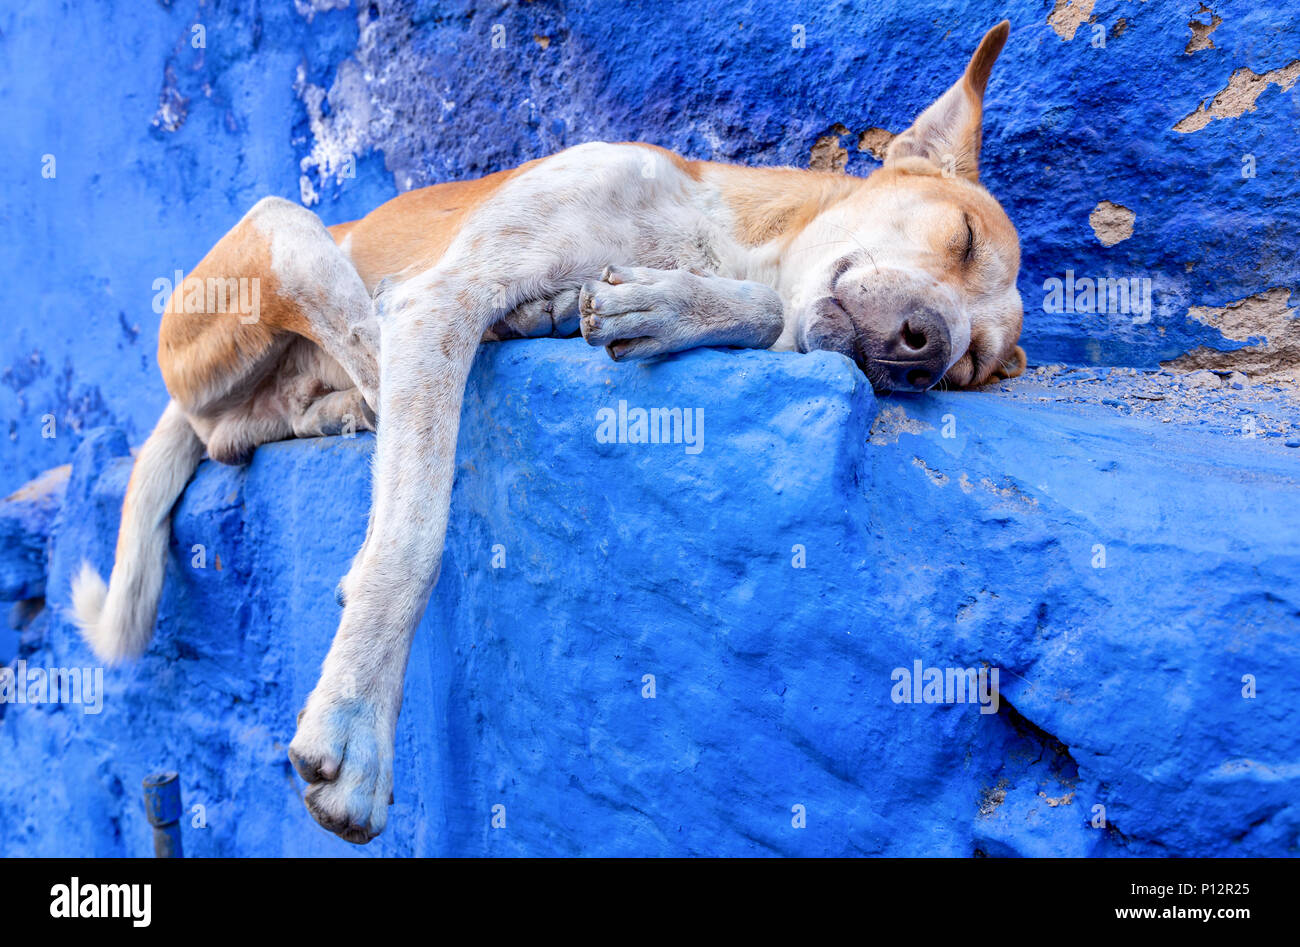 Dog resting in the blue city of Jodhpur, Rajasthan, India - Stock Image